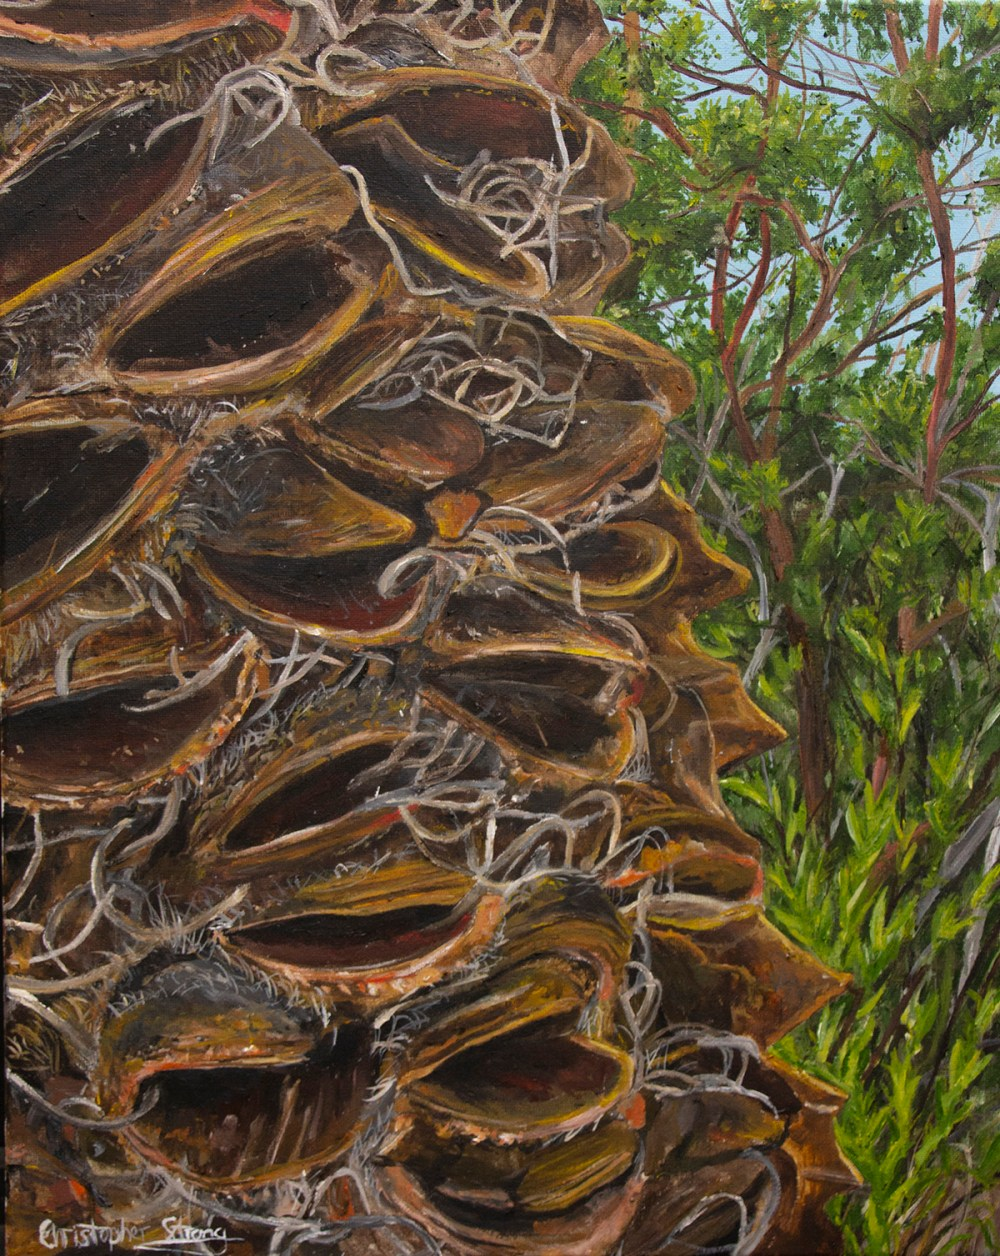 Banksia in the forest - Oil on canvas - 40cm x 50cm